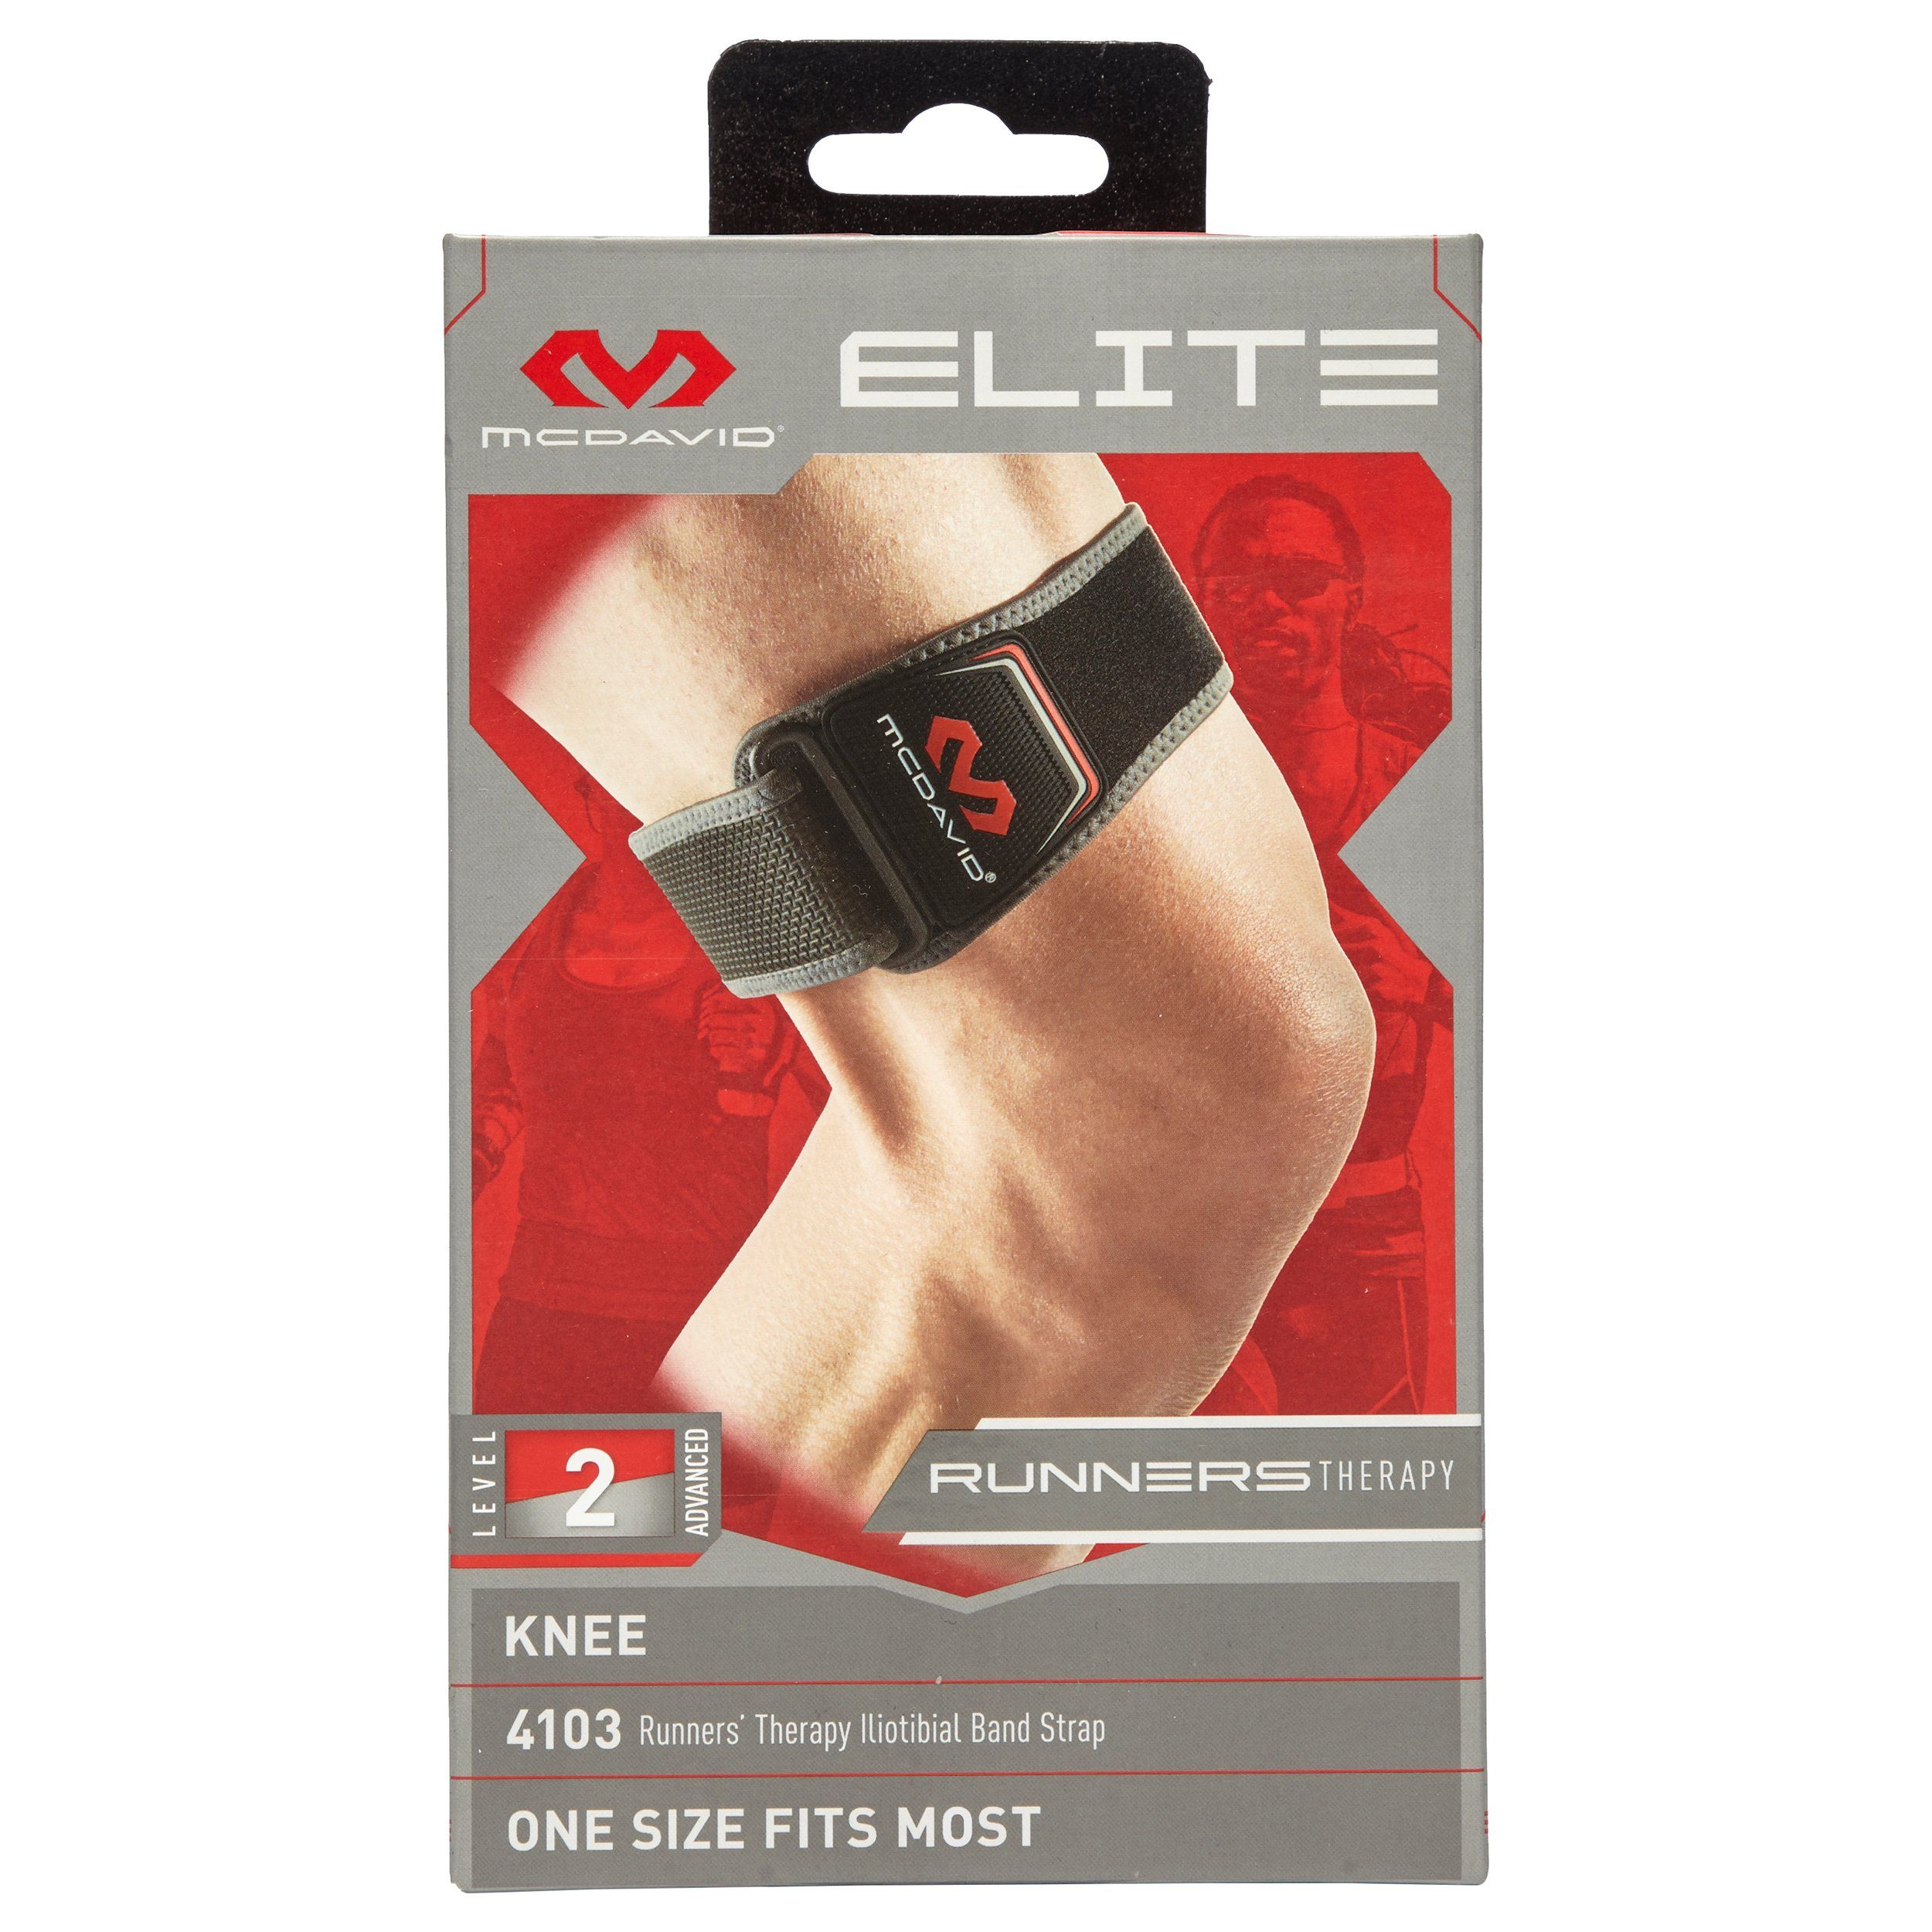 McDavid Runners' Therapy Illiotibial Band Strap